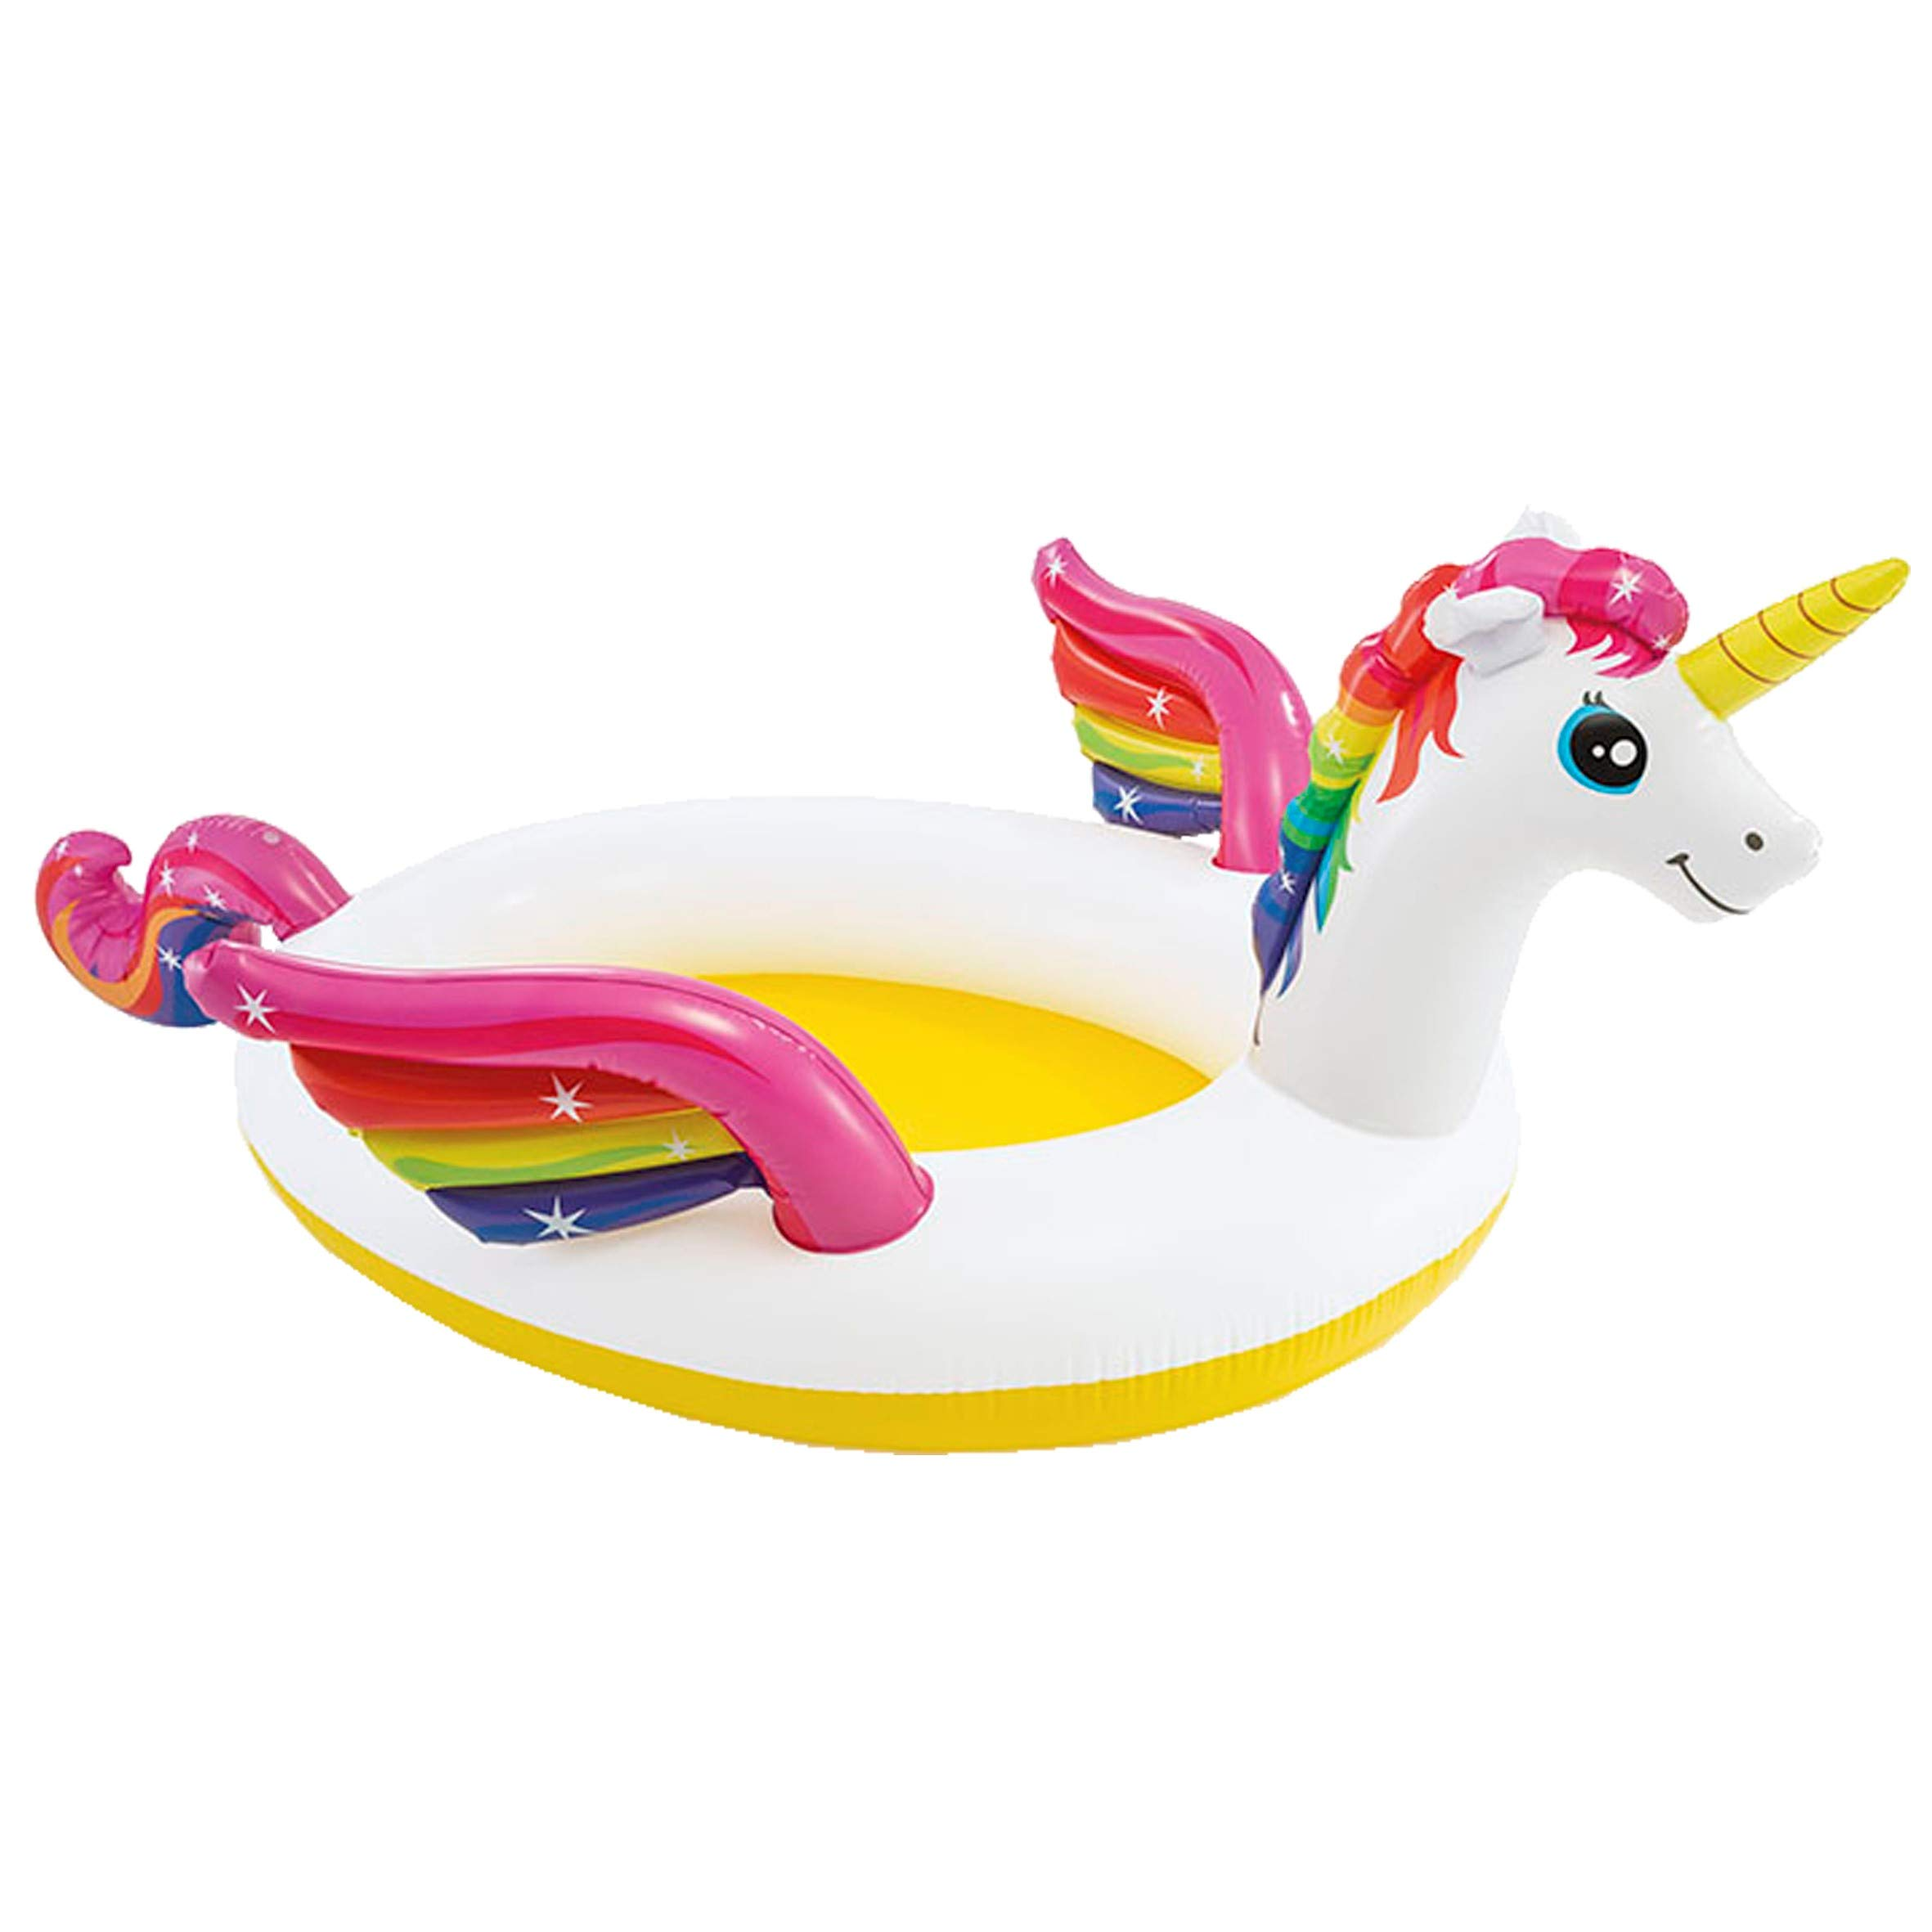 Intex 57441NP - Unicornio Hinchable Piscina con pulverizador ...